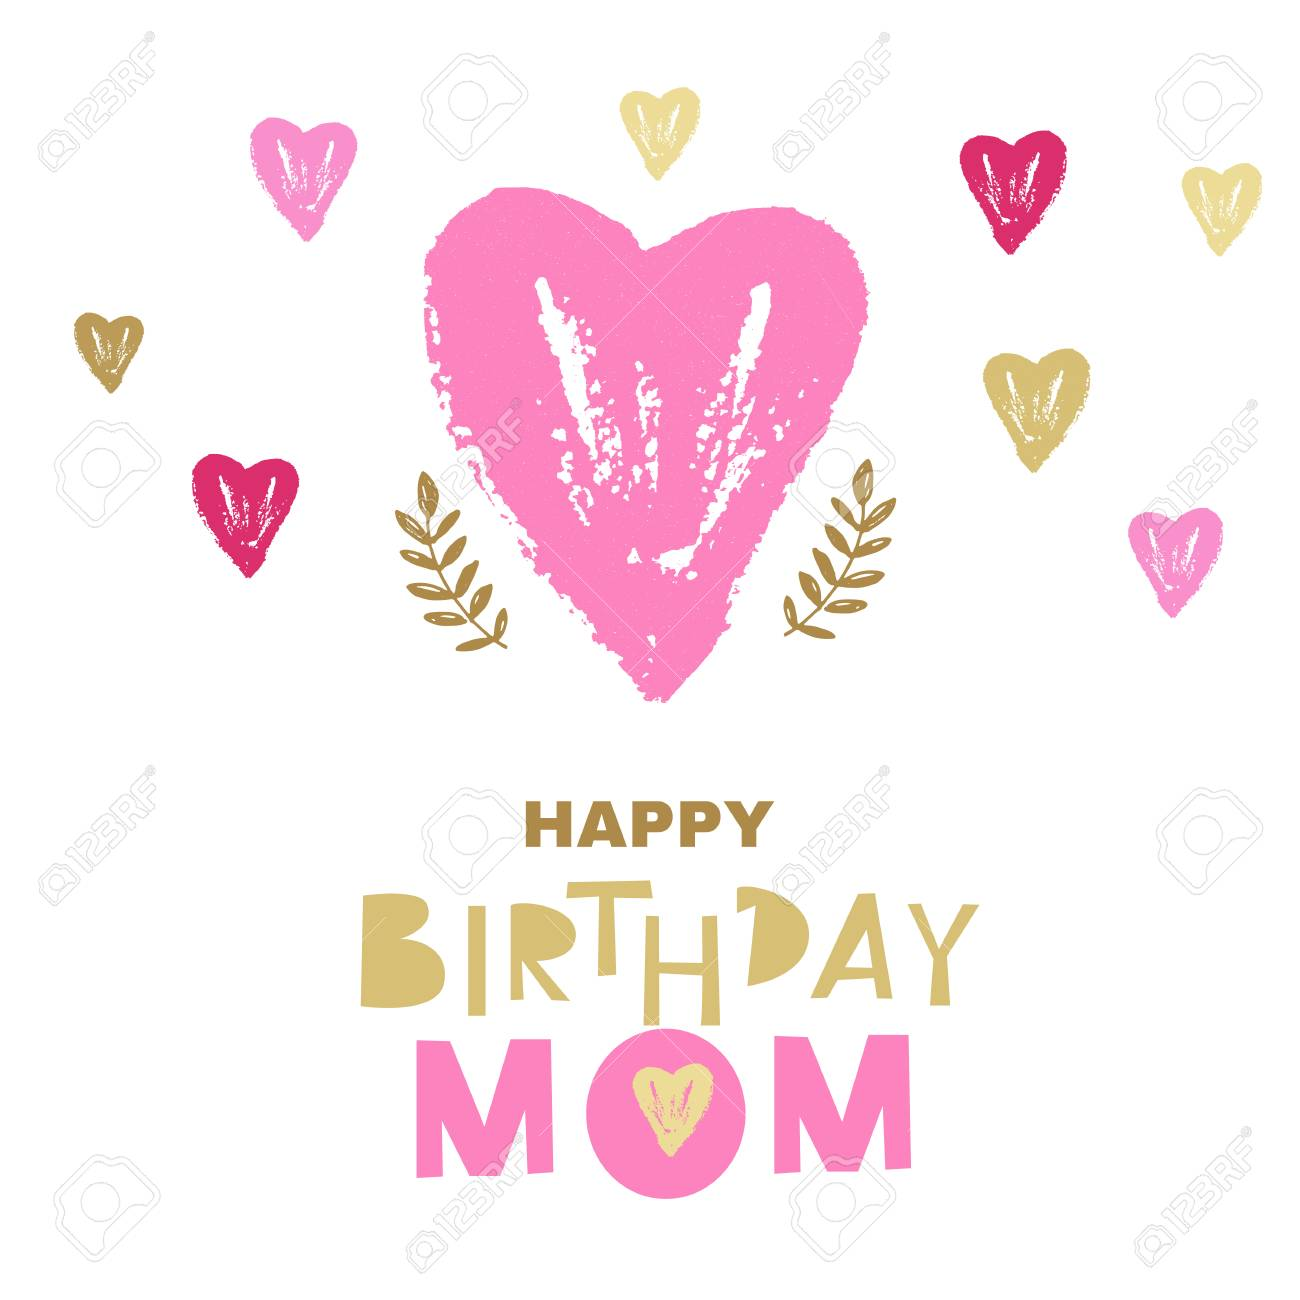 Happy Birthday Mom Greeting Card Design Vector Illustration Stock